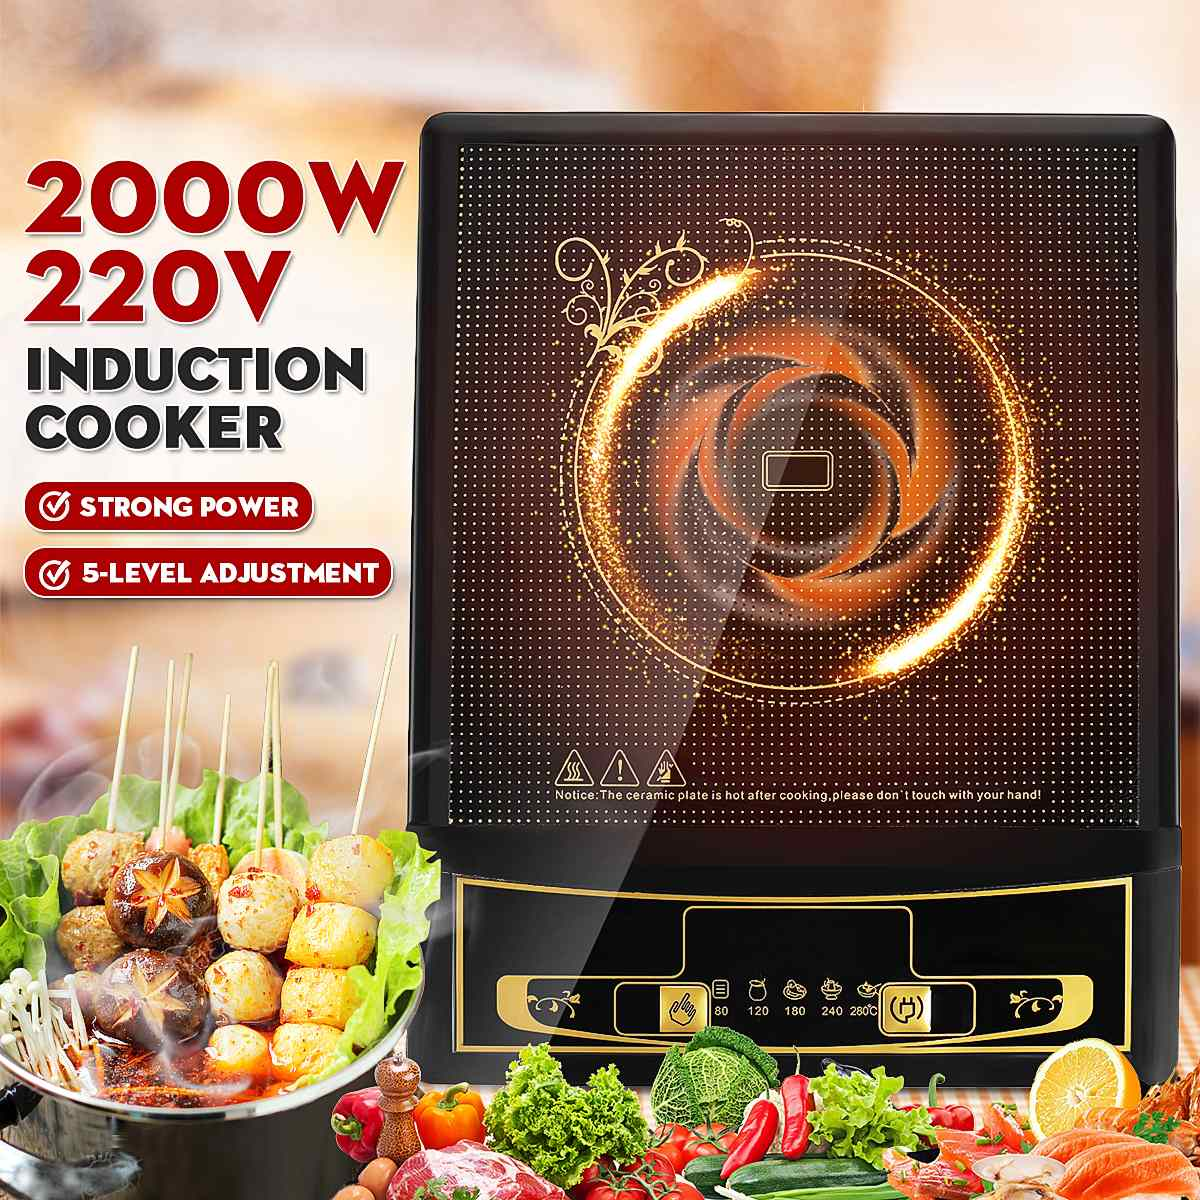 2200W 220V Portable Electric Button Control Induction Oven Cooker Cooking Tea Boiler Electromagnetic Adjustable 5 Mode